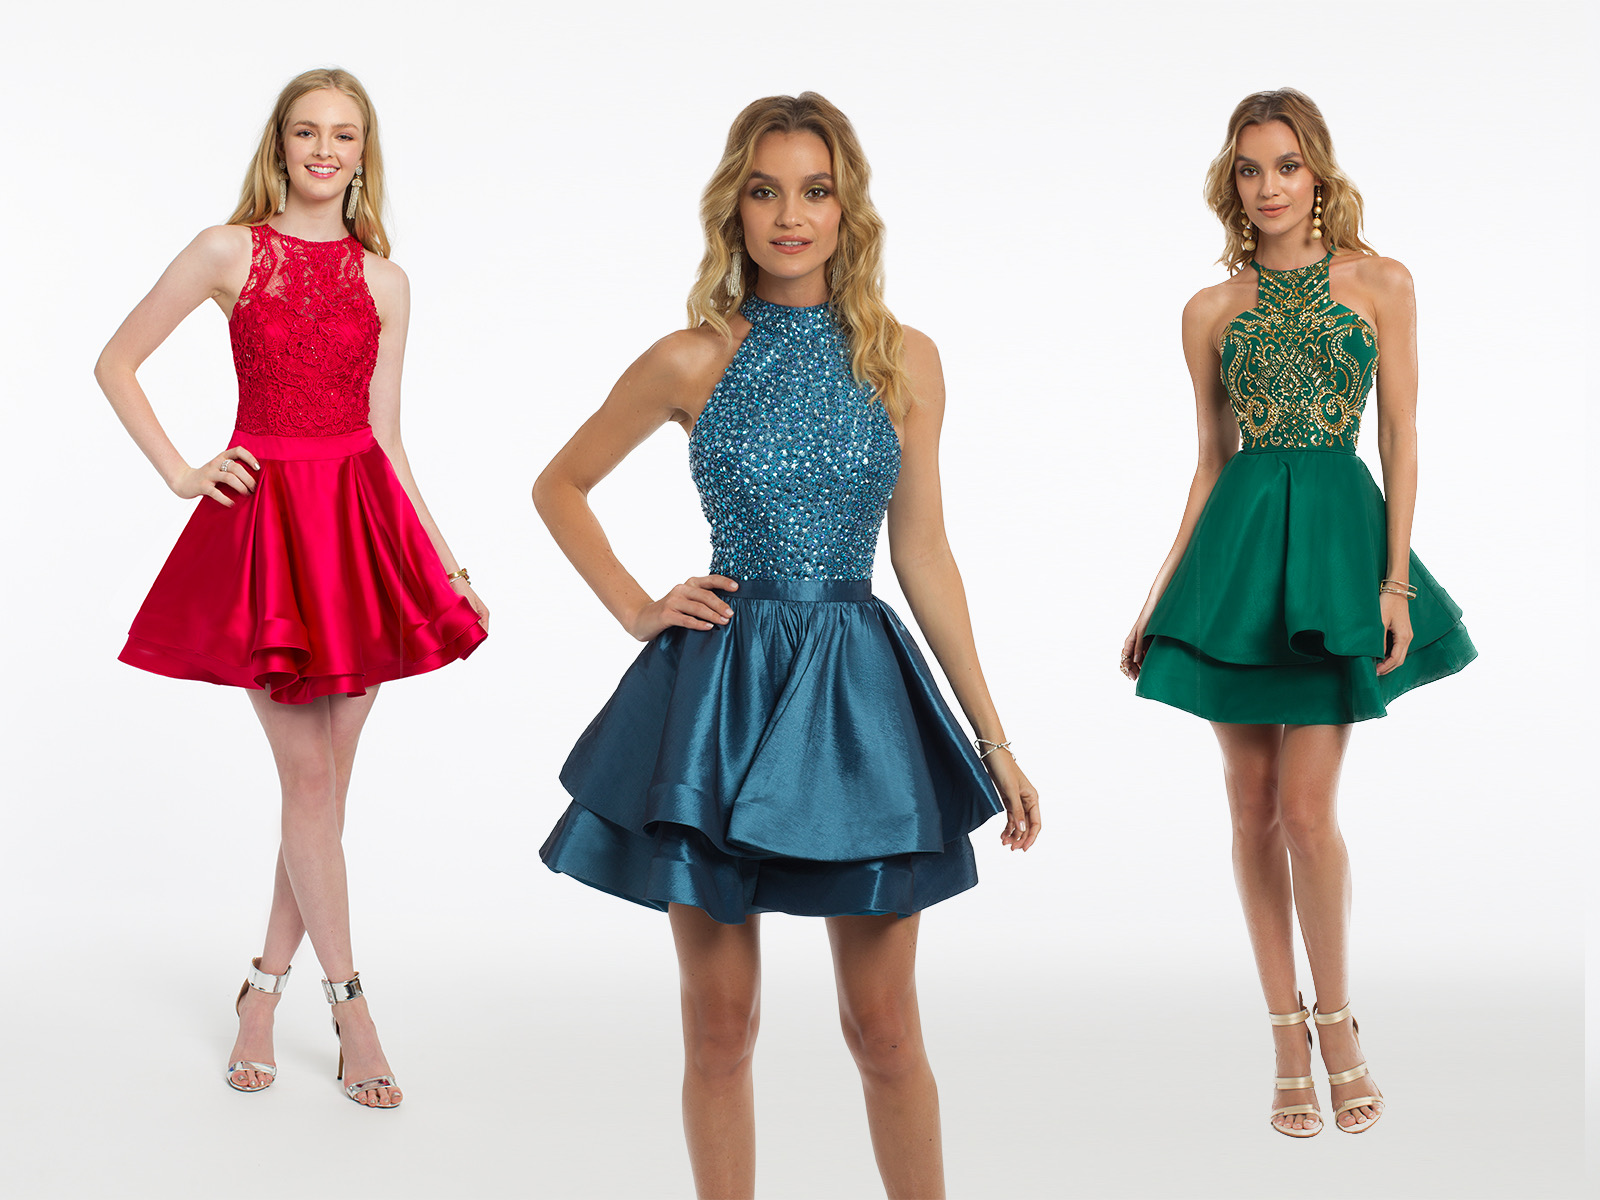 Carnival Theme Homecoming Dresses